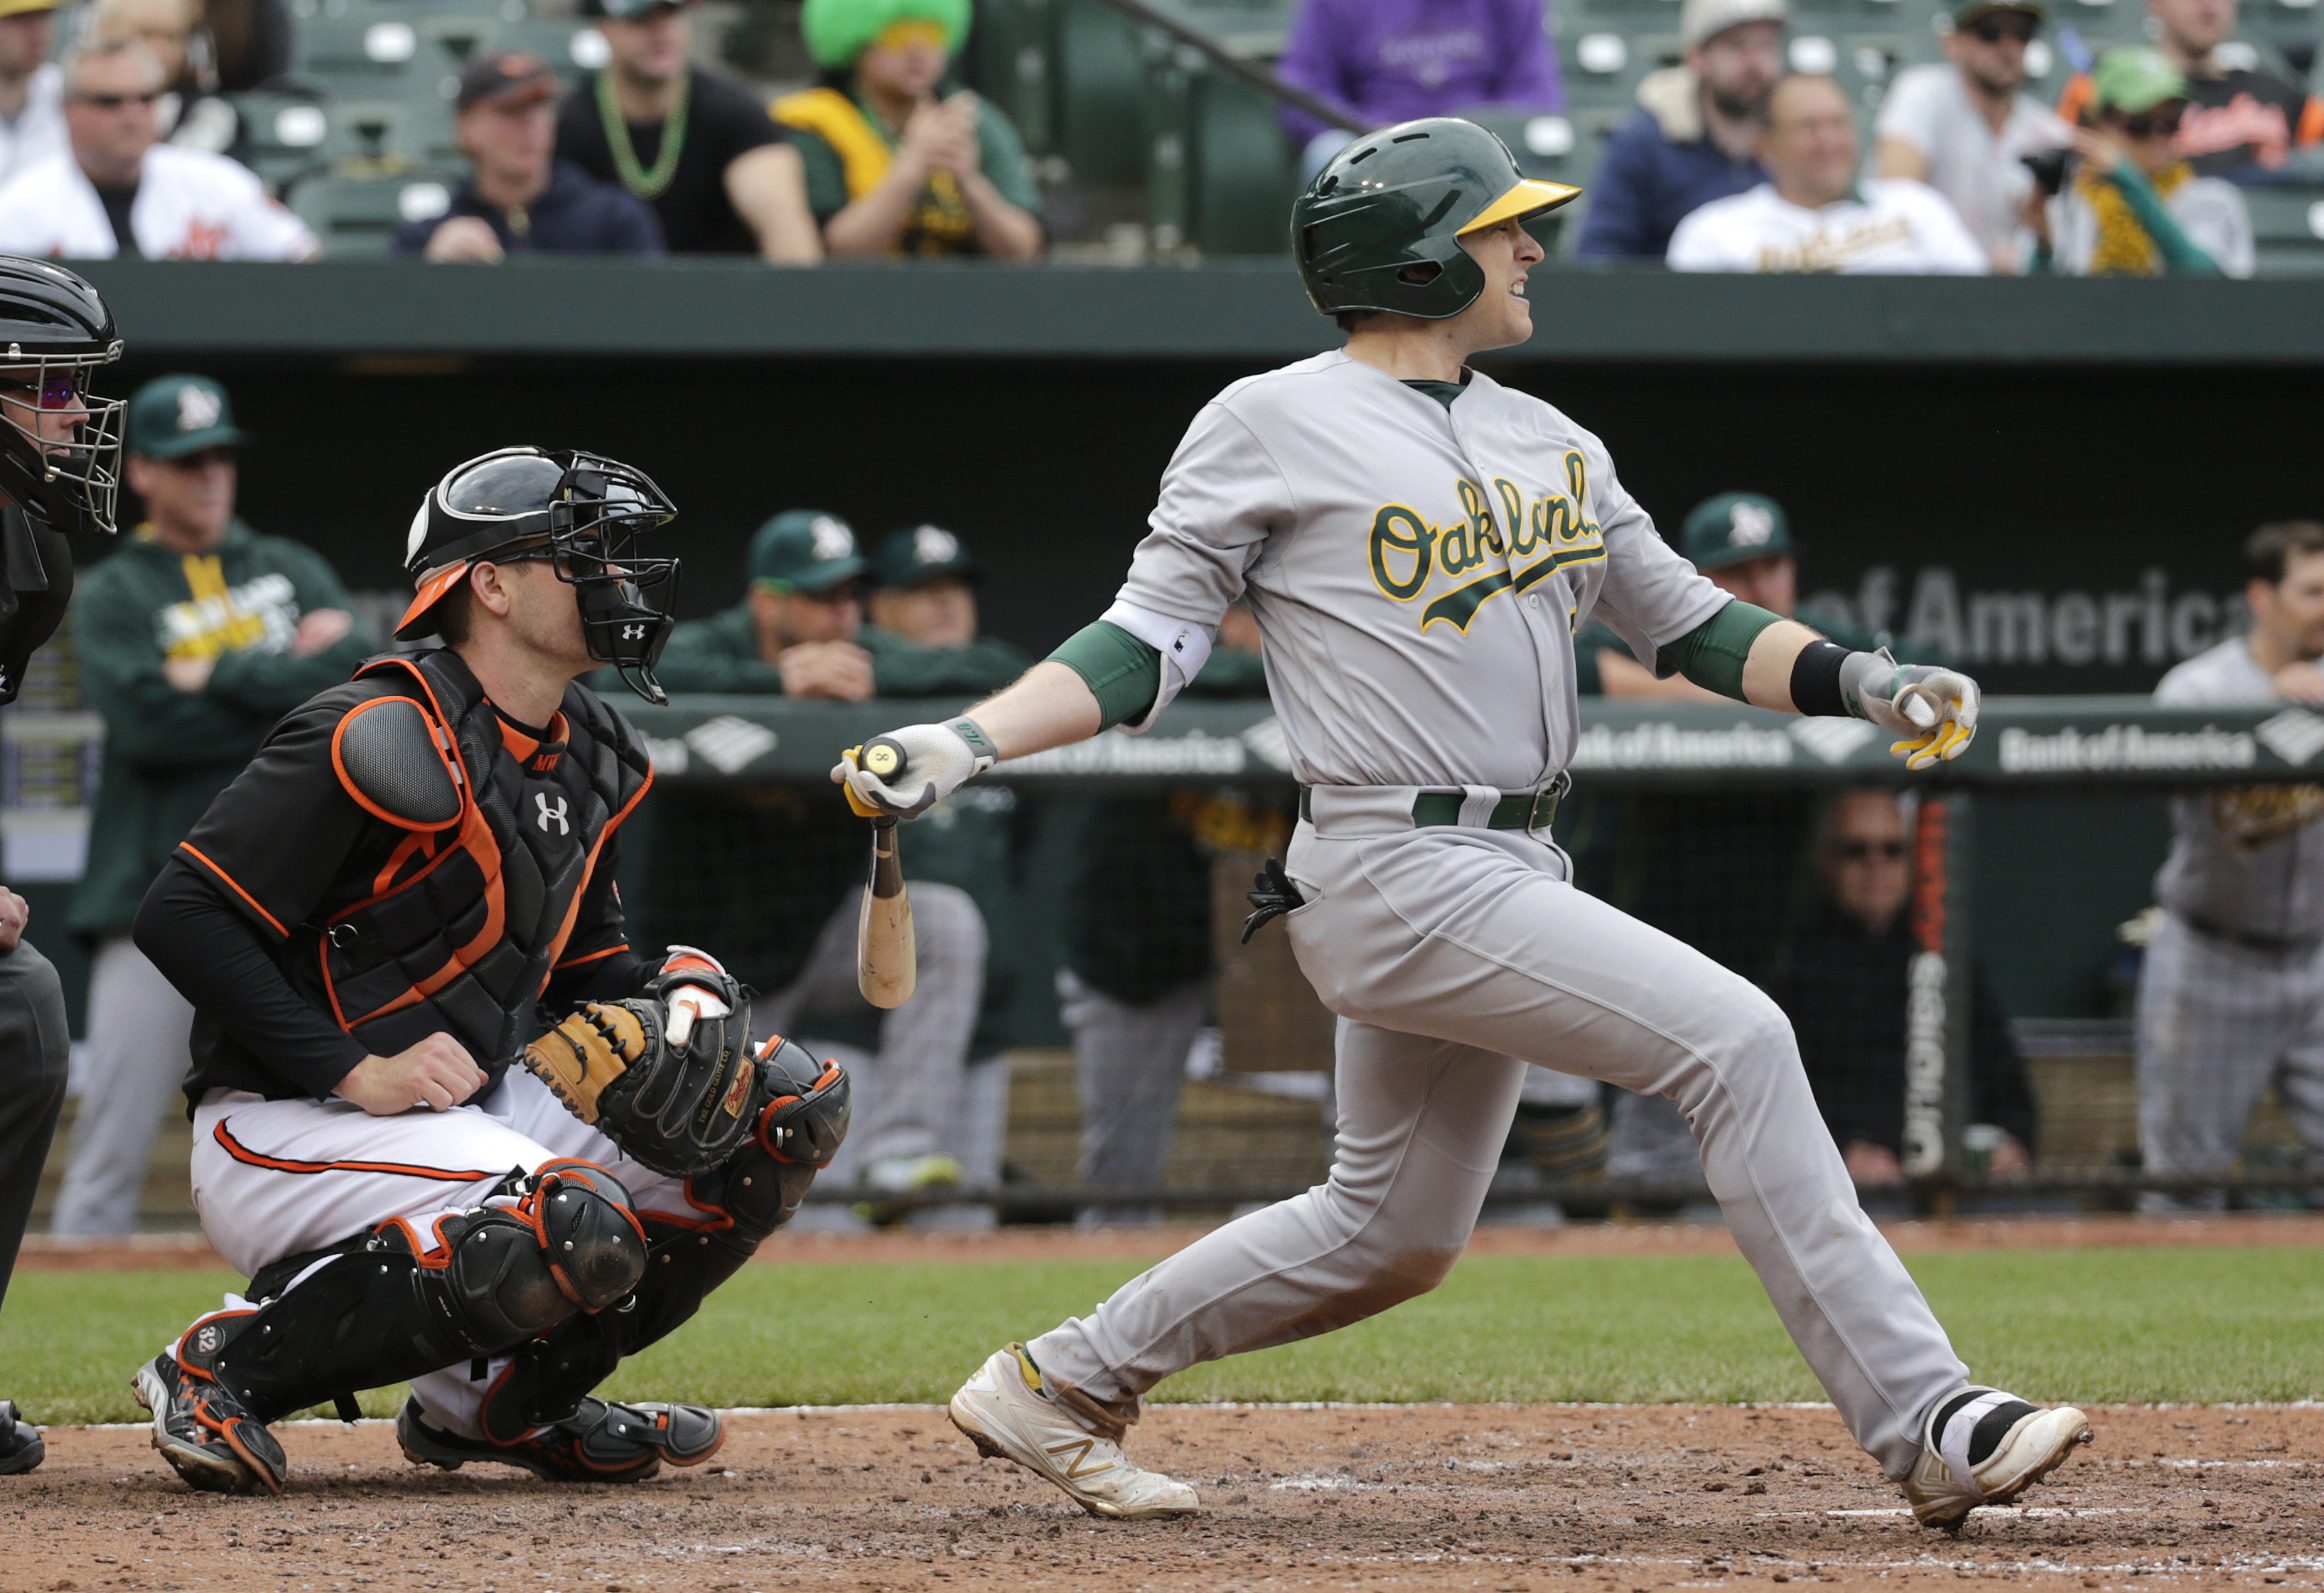 Oakland Athletics' Jed Lowrie singles in front of Baltimore Orioles catcher Matt Wieters in the sixth inning of the first baseball game of a doubleheader in Baltimore, Saturday, May 7, 2016. Yonder Alonso and Marcus Semien scored on the play. (AP Photo/Pa